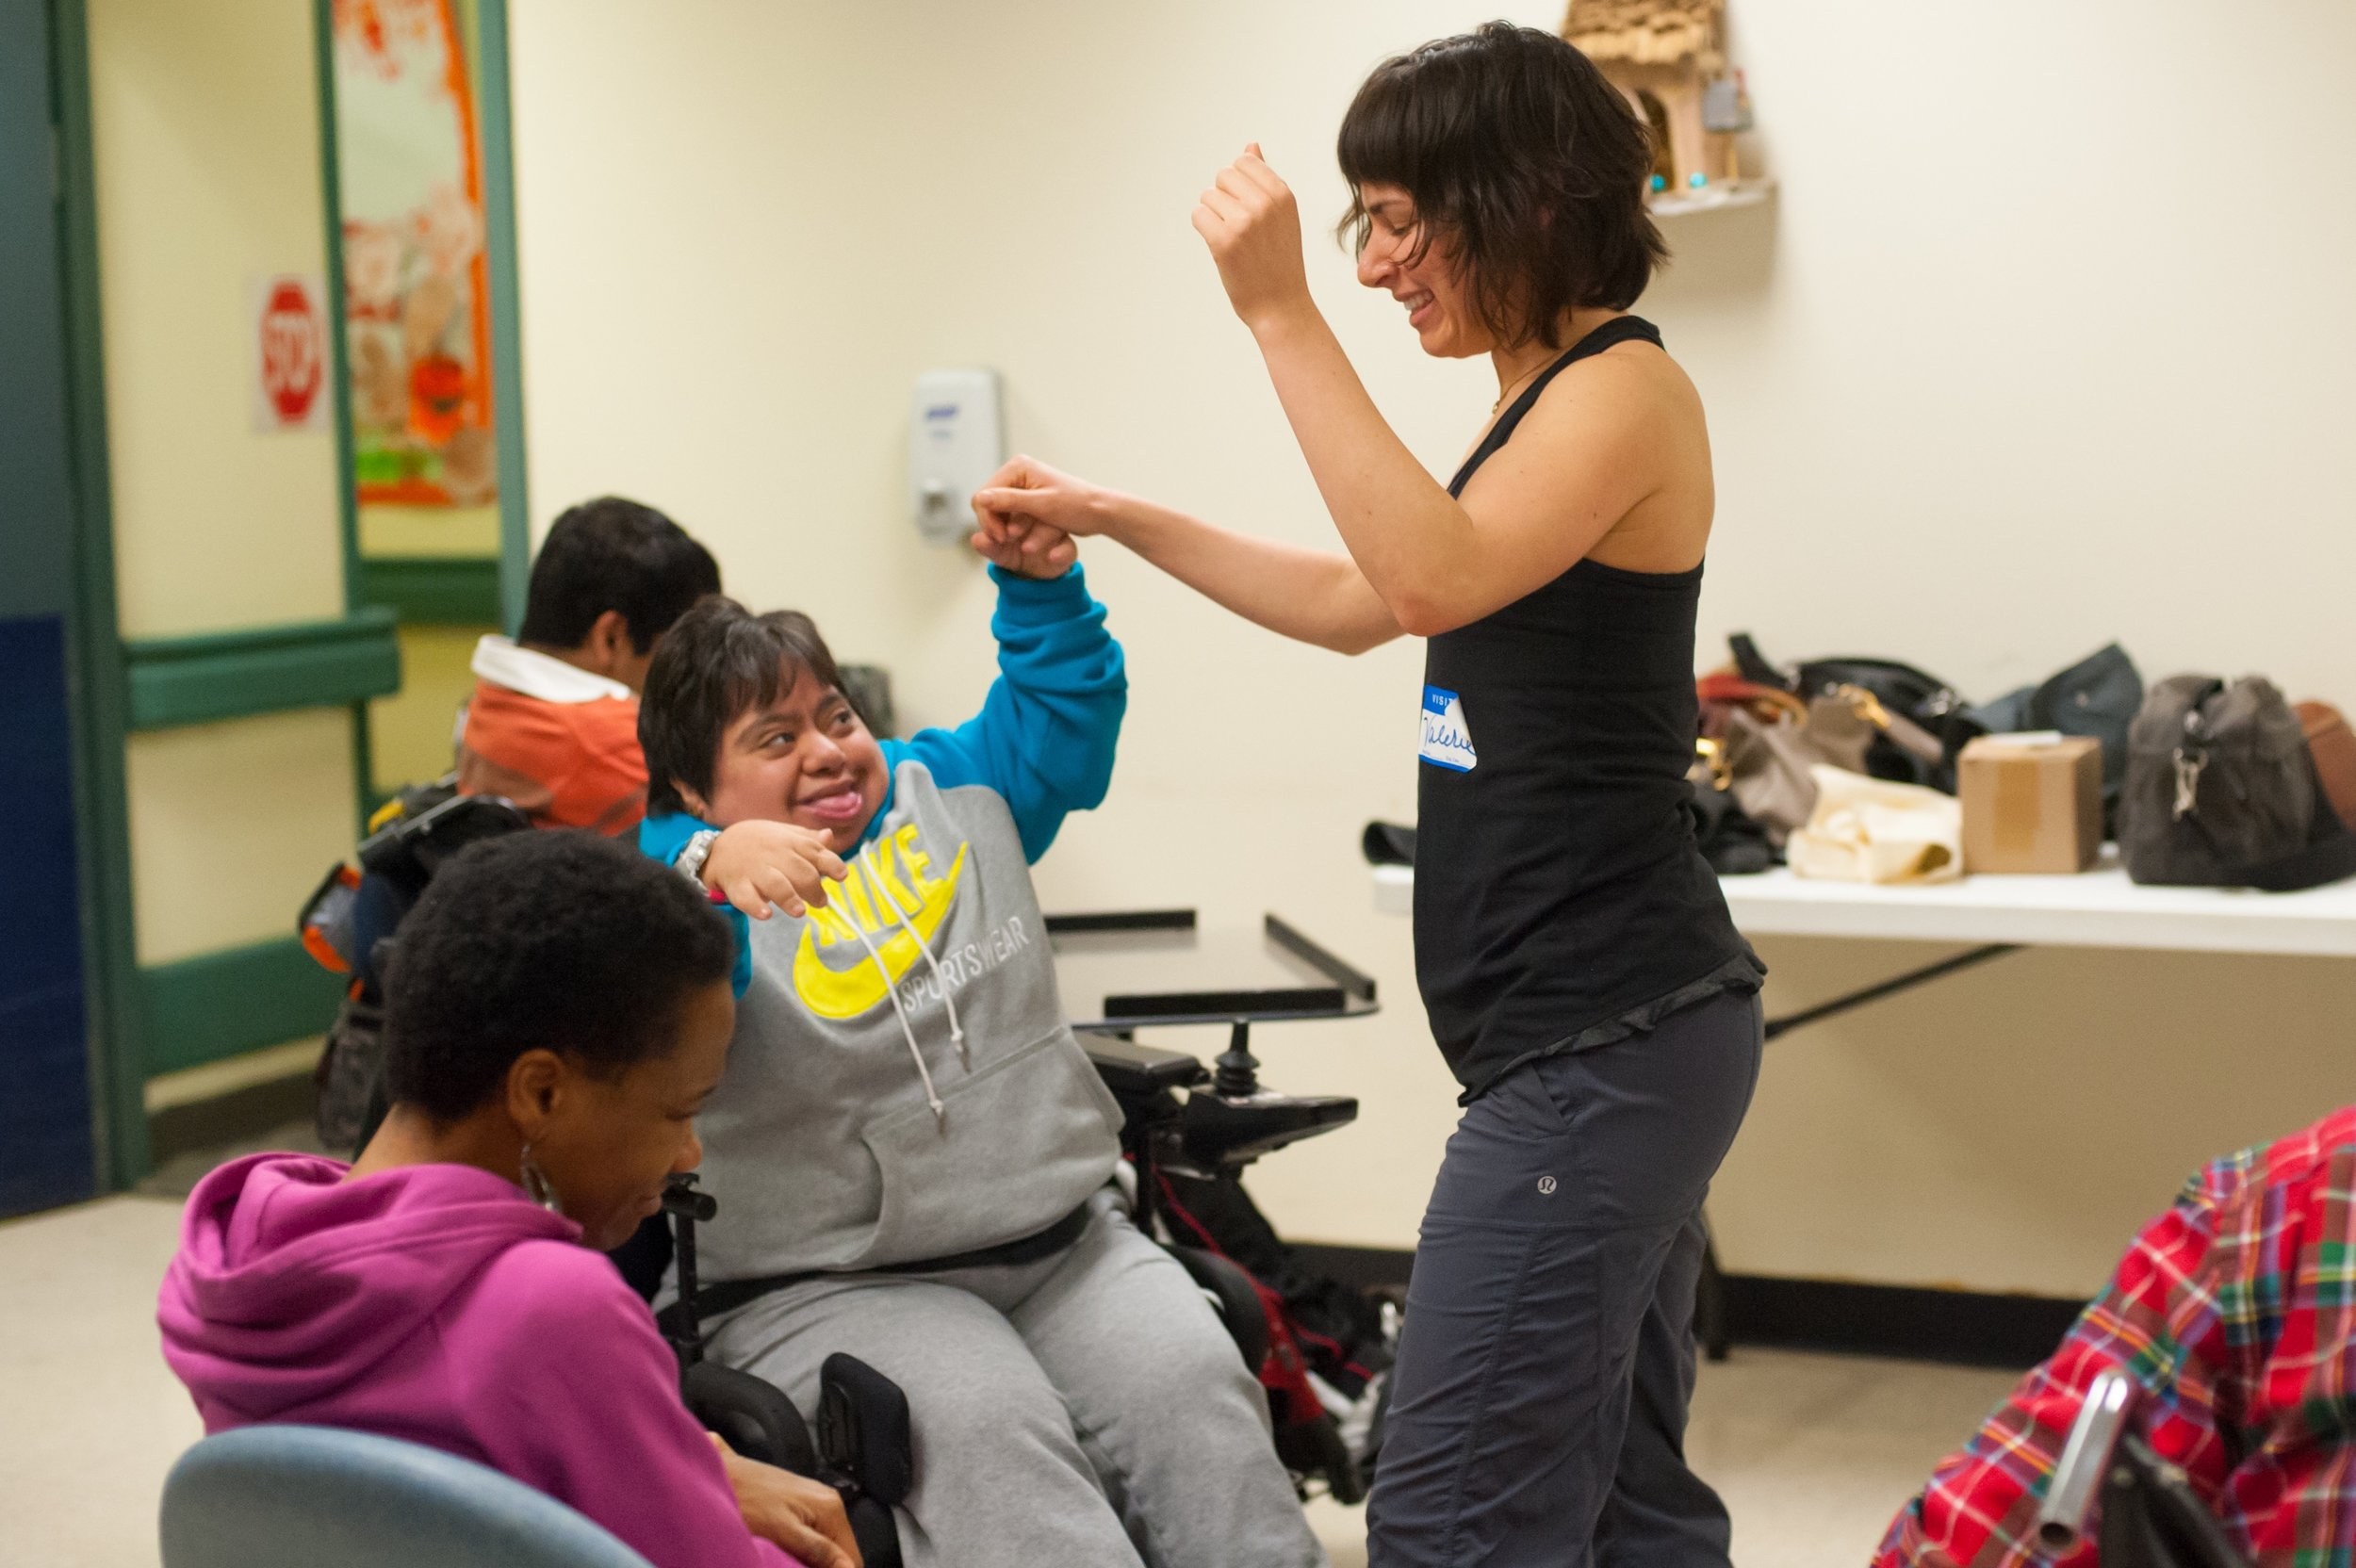 Teaching for Sing For Hope at United Cerebral Palsy